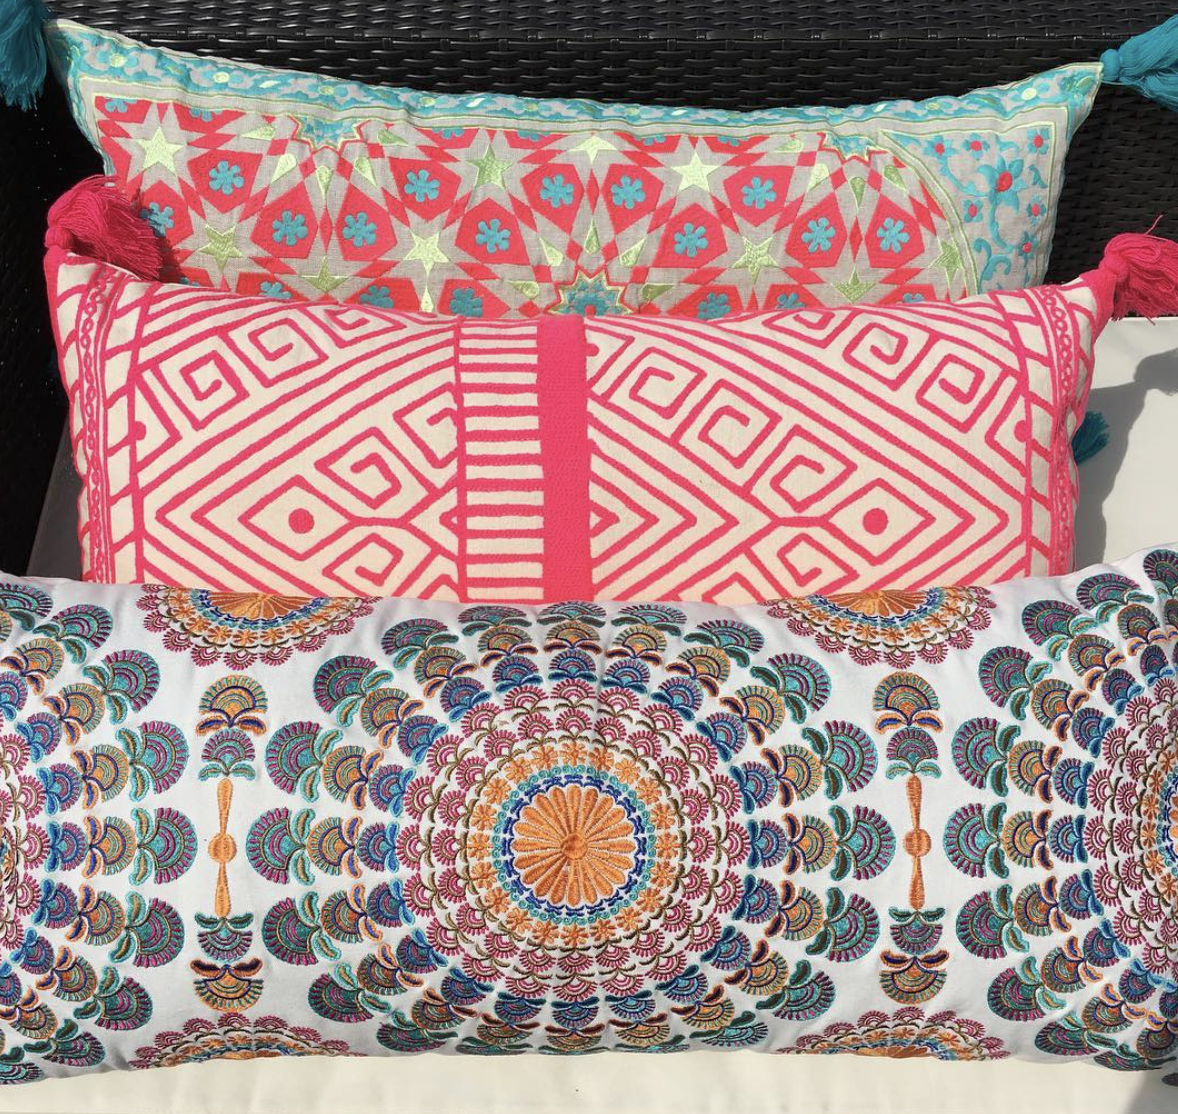 Jaipur Neon Cushion , The Effortless Trading Company £42